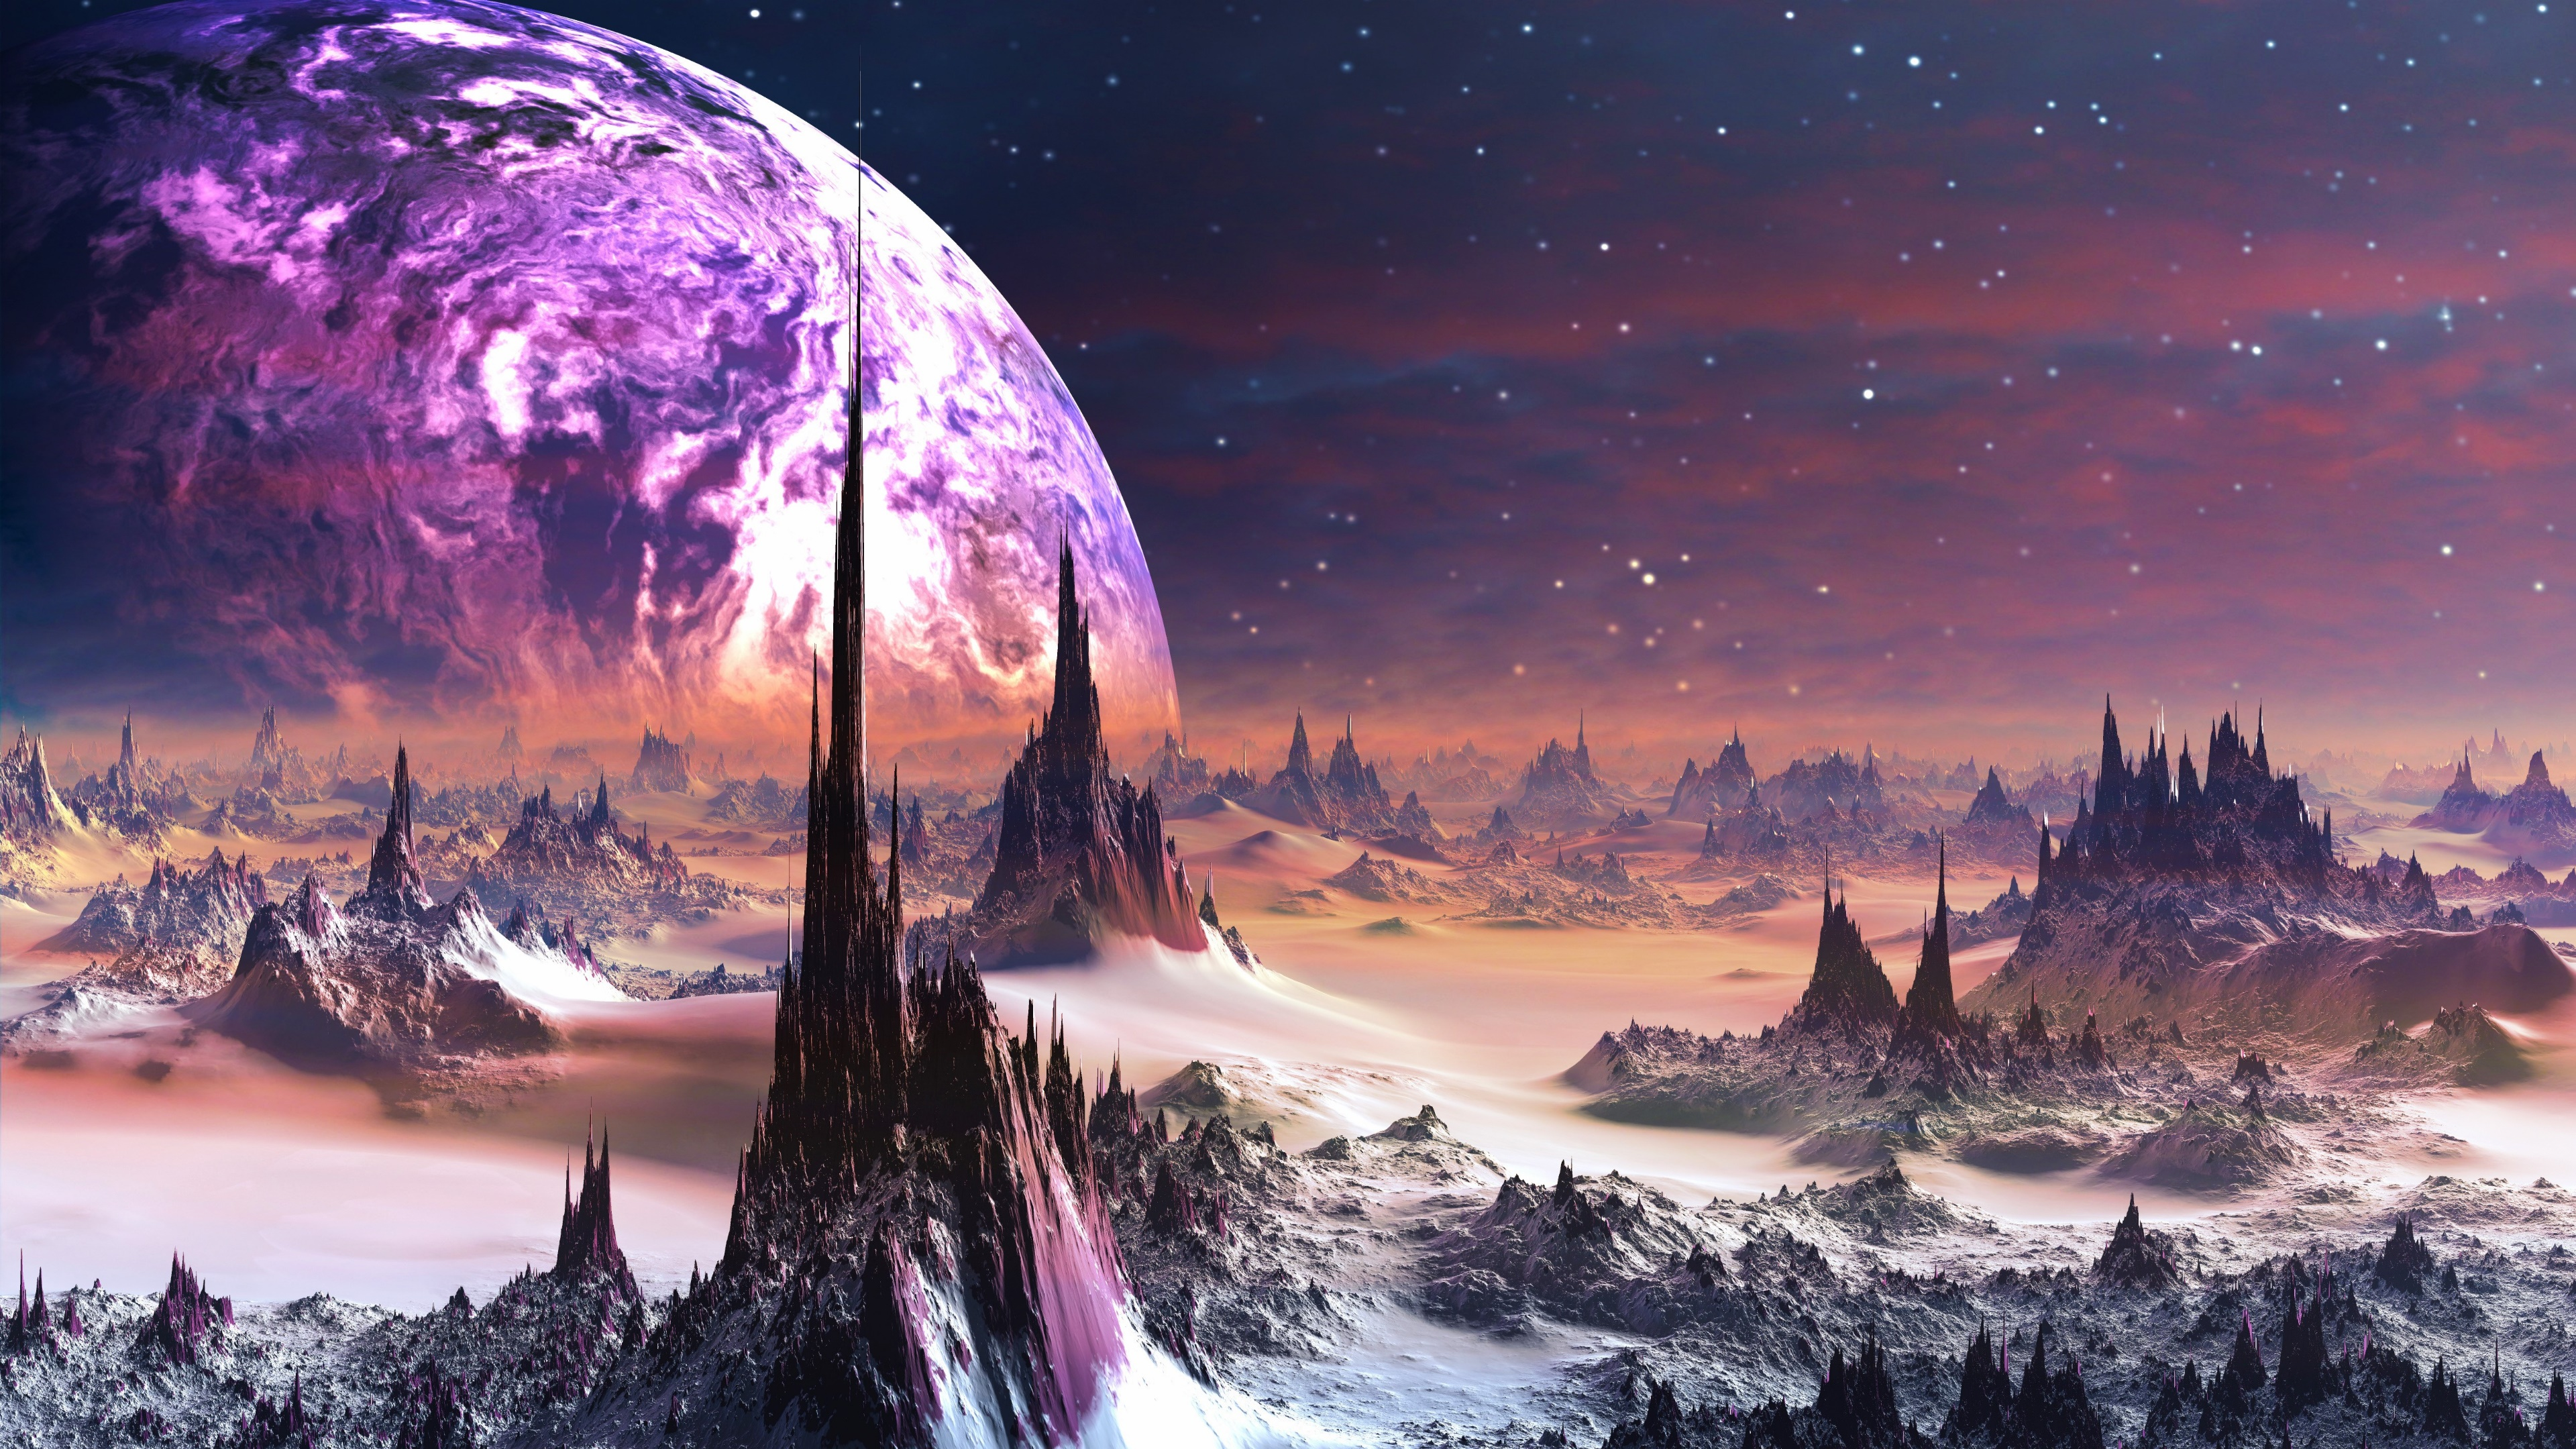 4k Ultra Hd Wallpaper Sci Fi: Spiky Scifi Planet Landscape 4K UltraHD Wallpaper